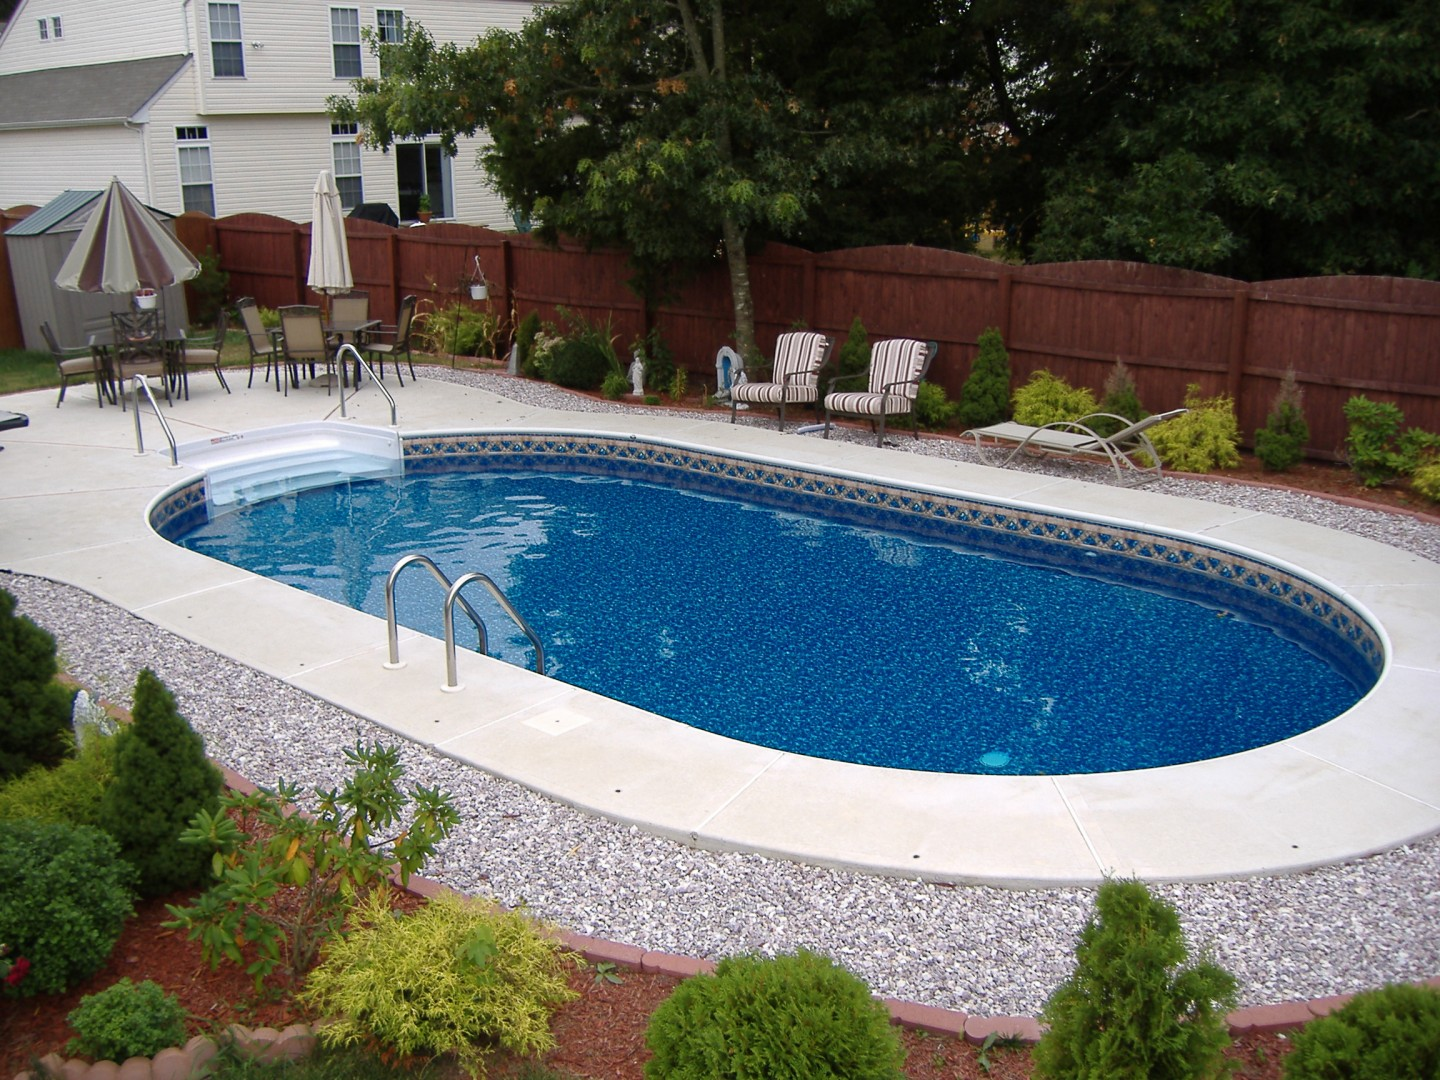 Top 10 custom in ground pool models in 2017 pool city for Best in ground pool